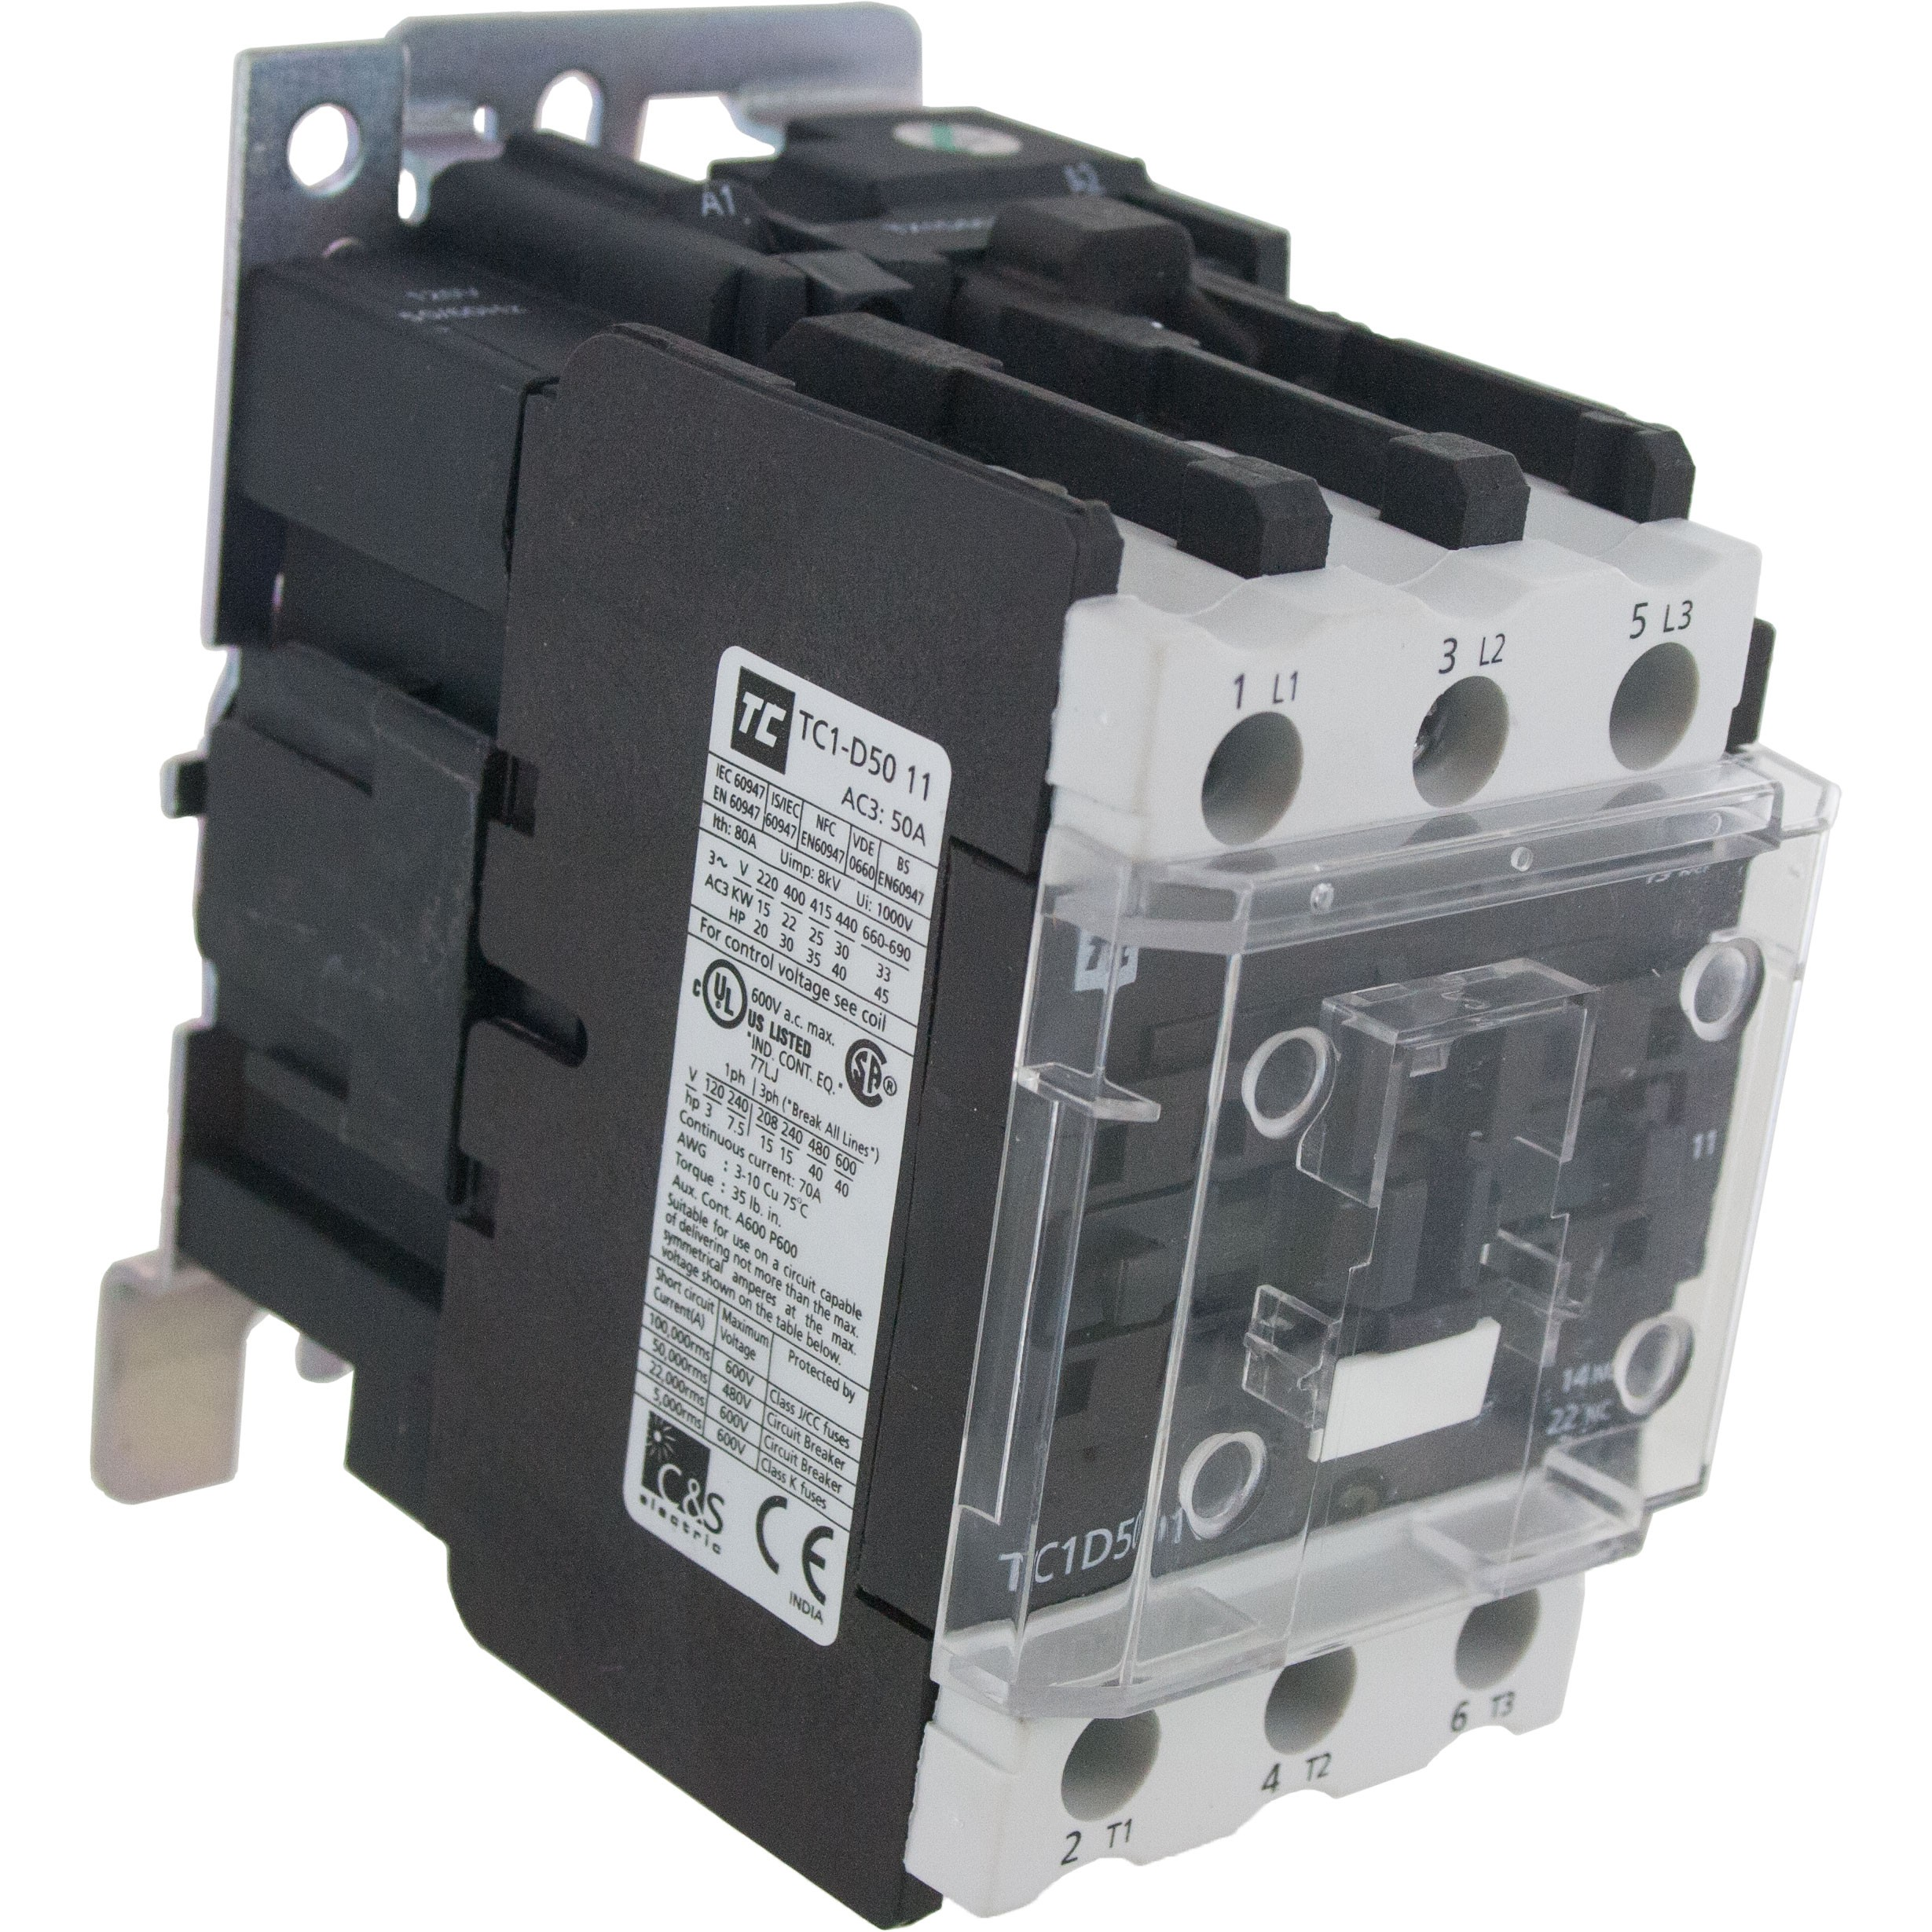 3 Pole Contactor 50 Amp 1 N/O - 1 N/C 440 Volt AC Coil Angle